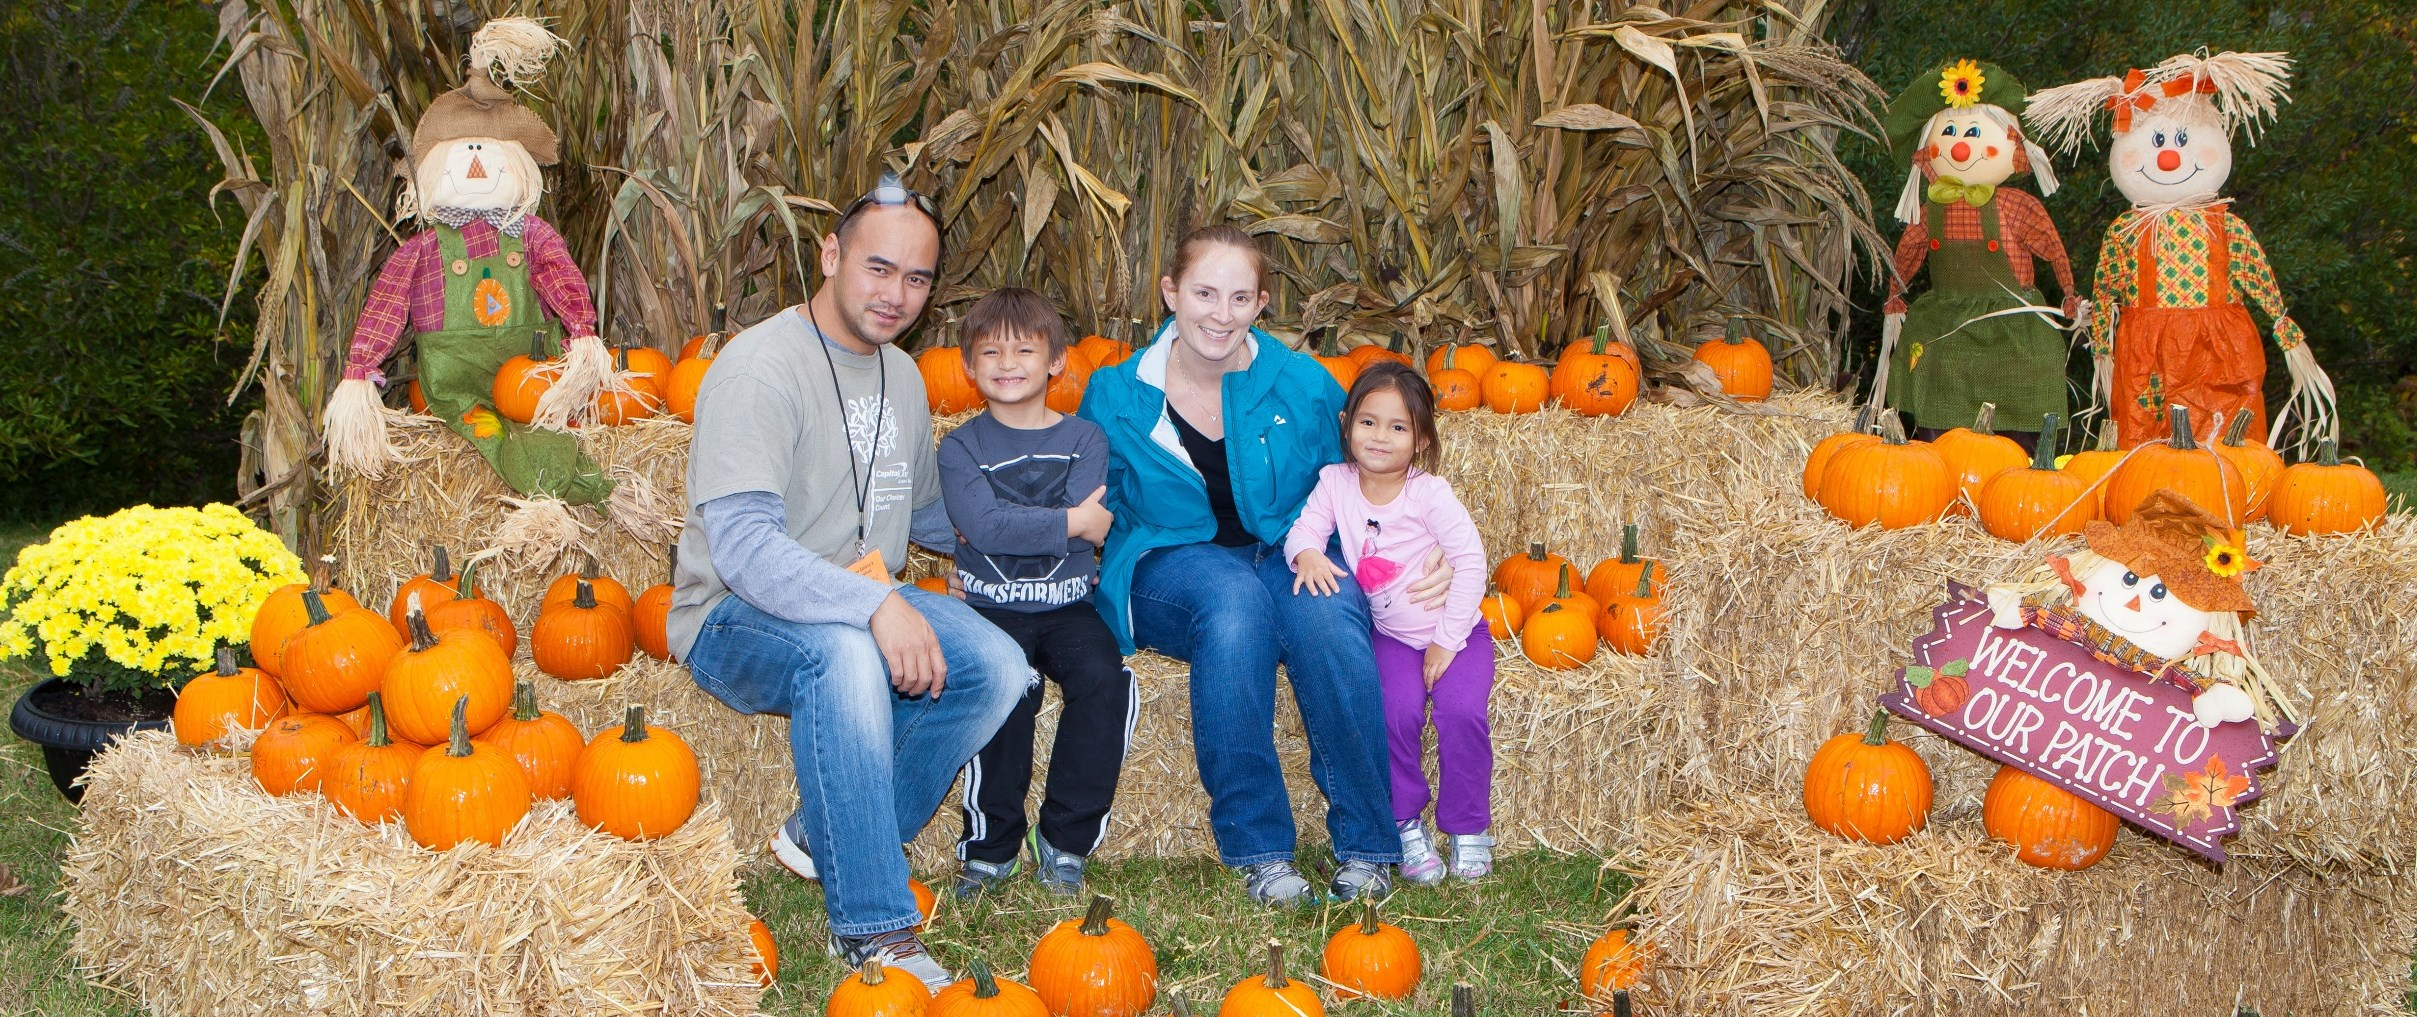 Page 6 Wild West Fall Festival Photograph courtesy of Bridget Hazel Photography Save the Date!